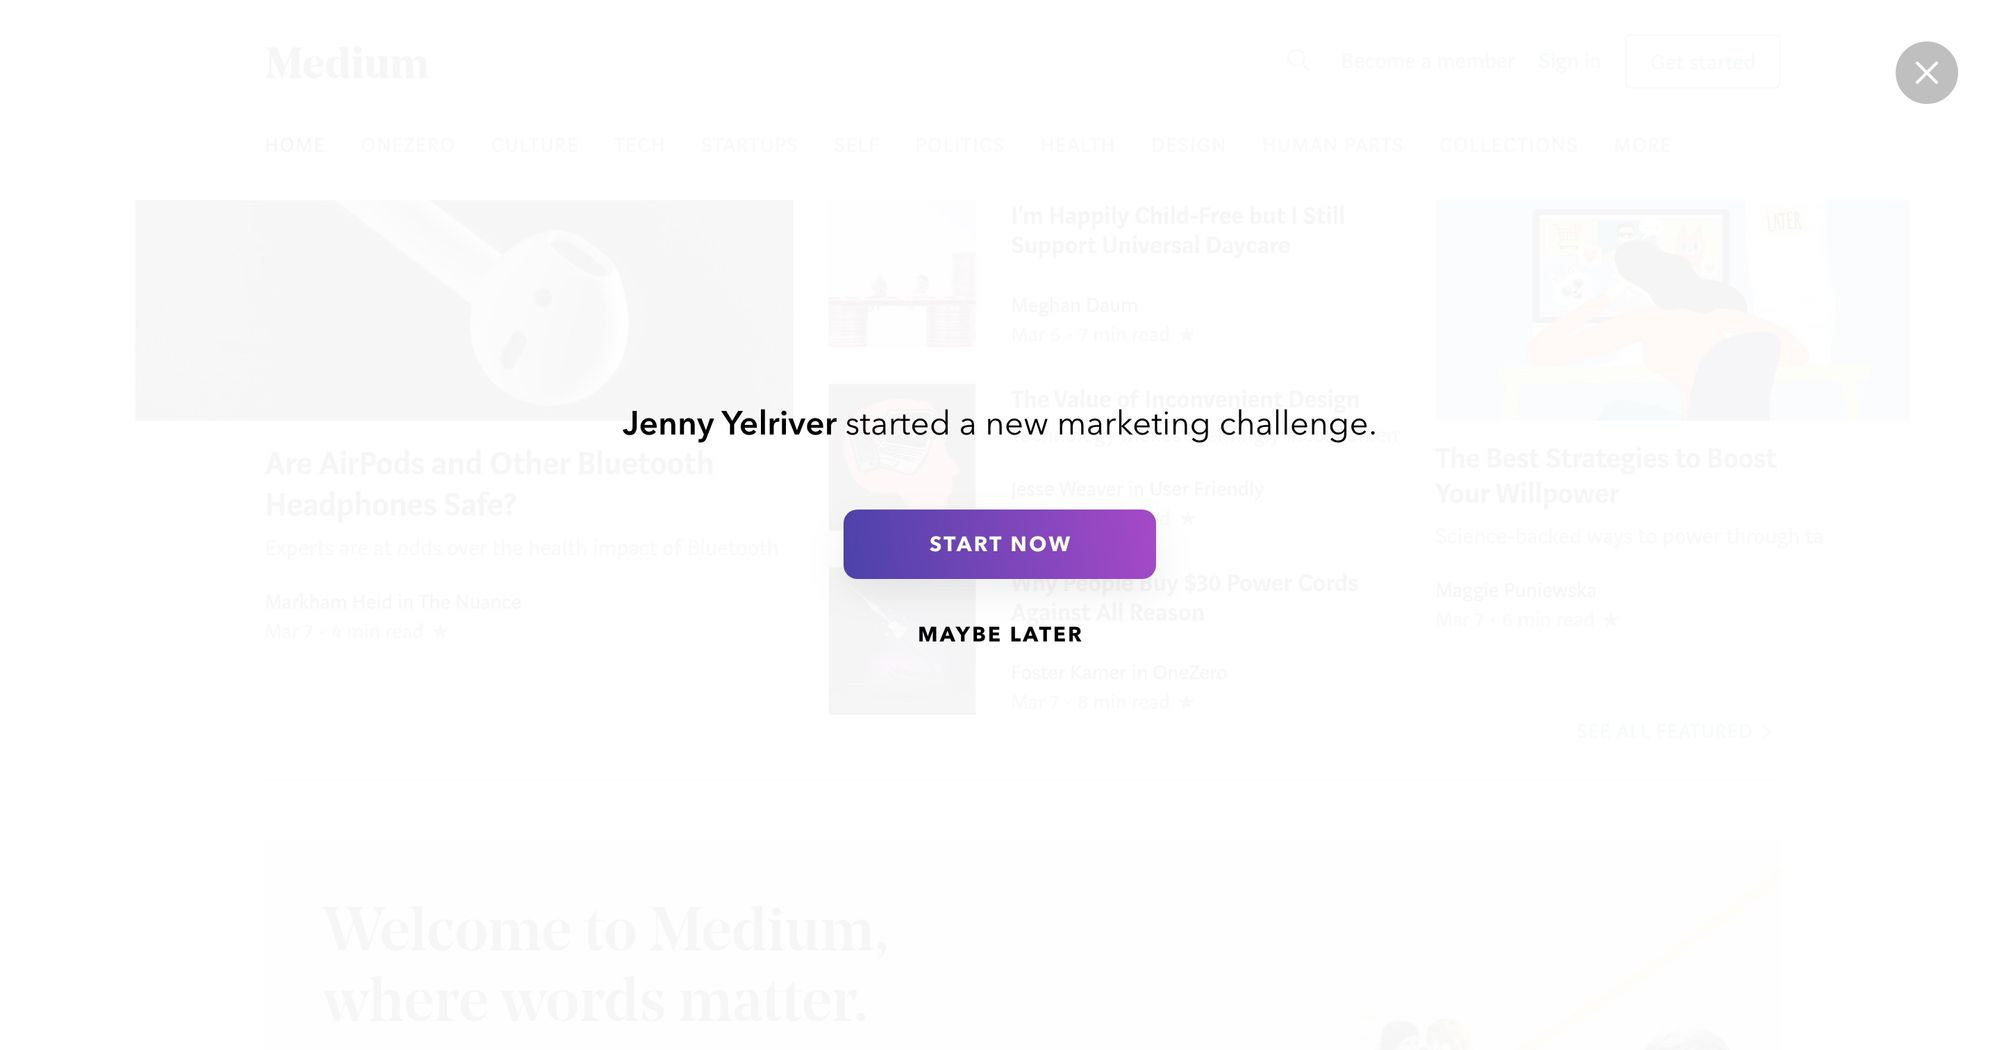 """Join a Marketing Challenge"" - Notification Popup Design 02 (Fullscreen Version)"